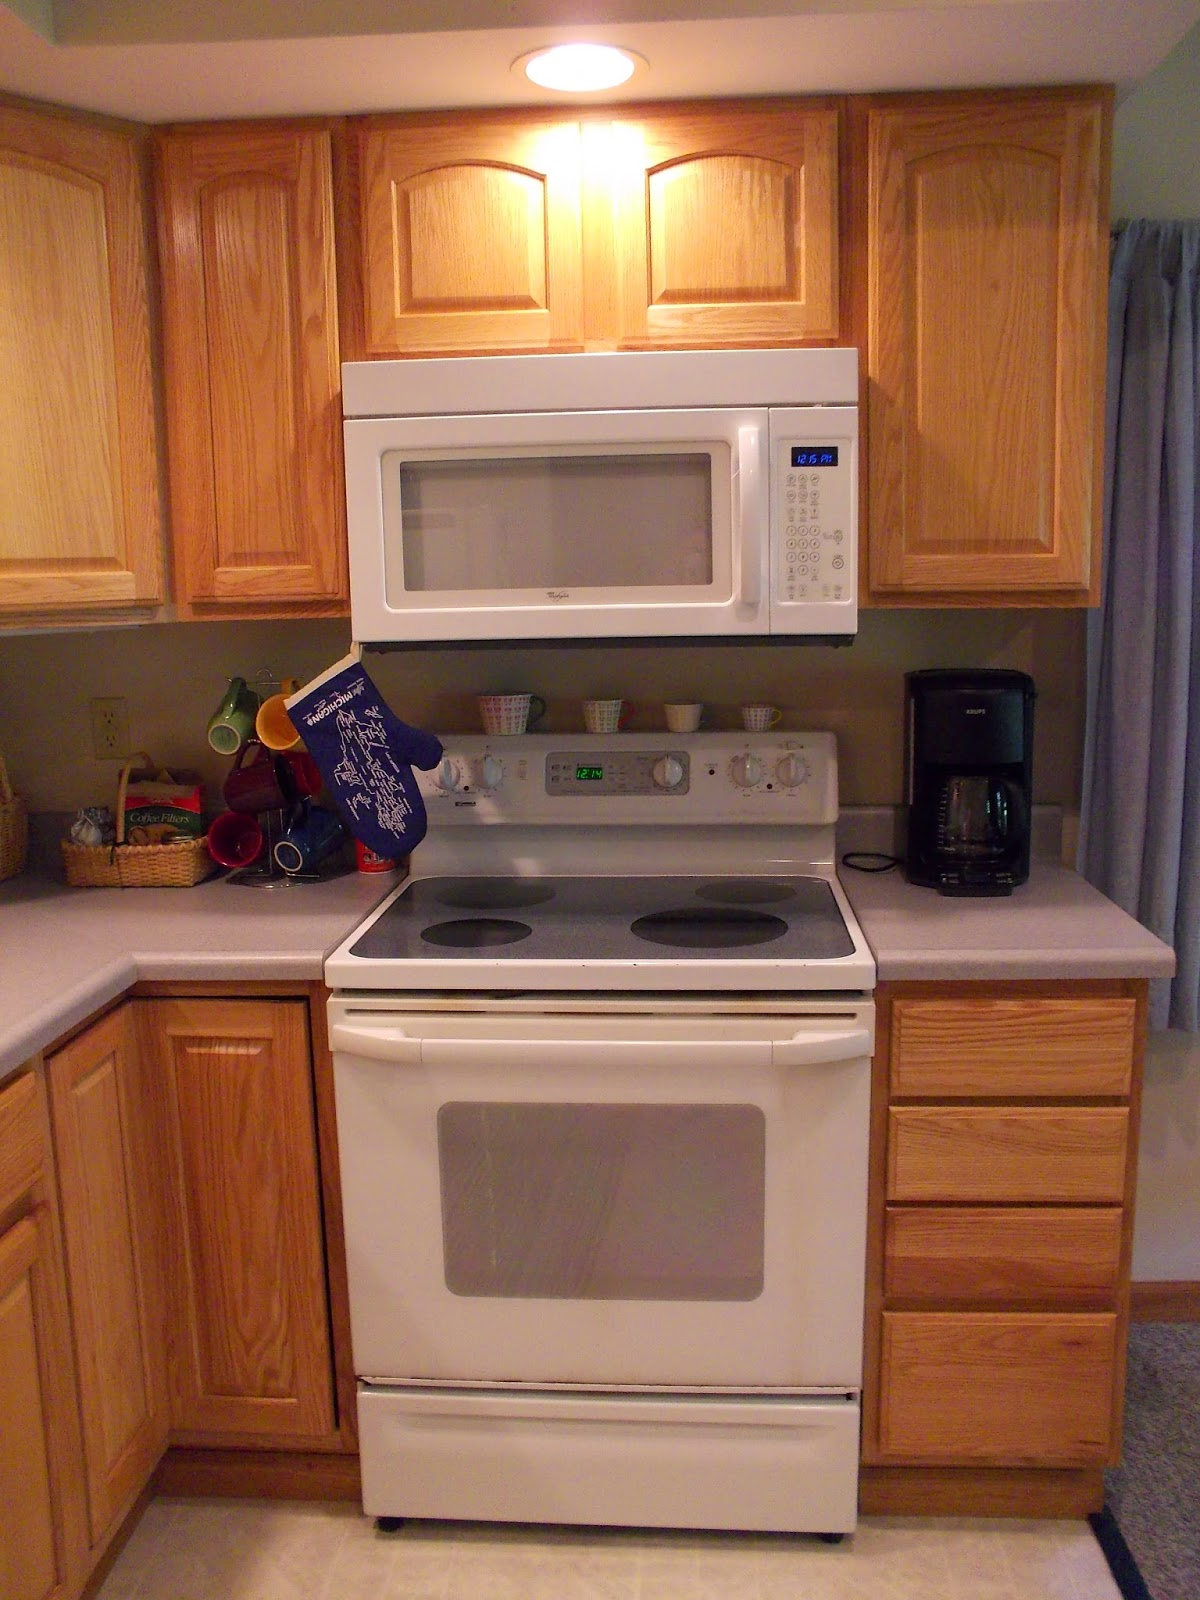 Enjoy a full kitchen at The Hutch, a bed and breakfast in Hillsdale, MI.